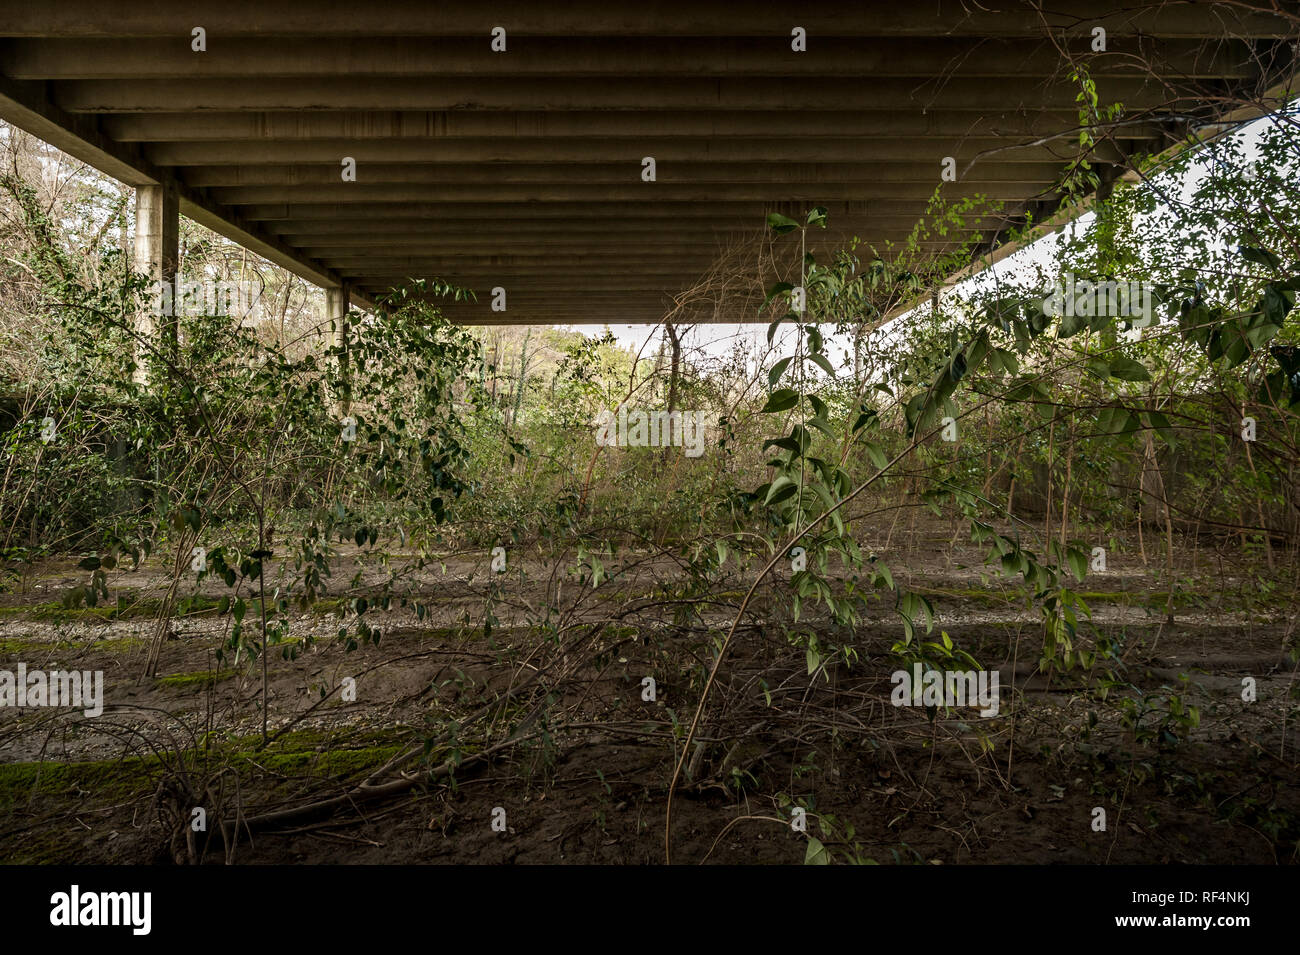 Abandoned shed with spontaneous natural vegetation growth - Stock Image